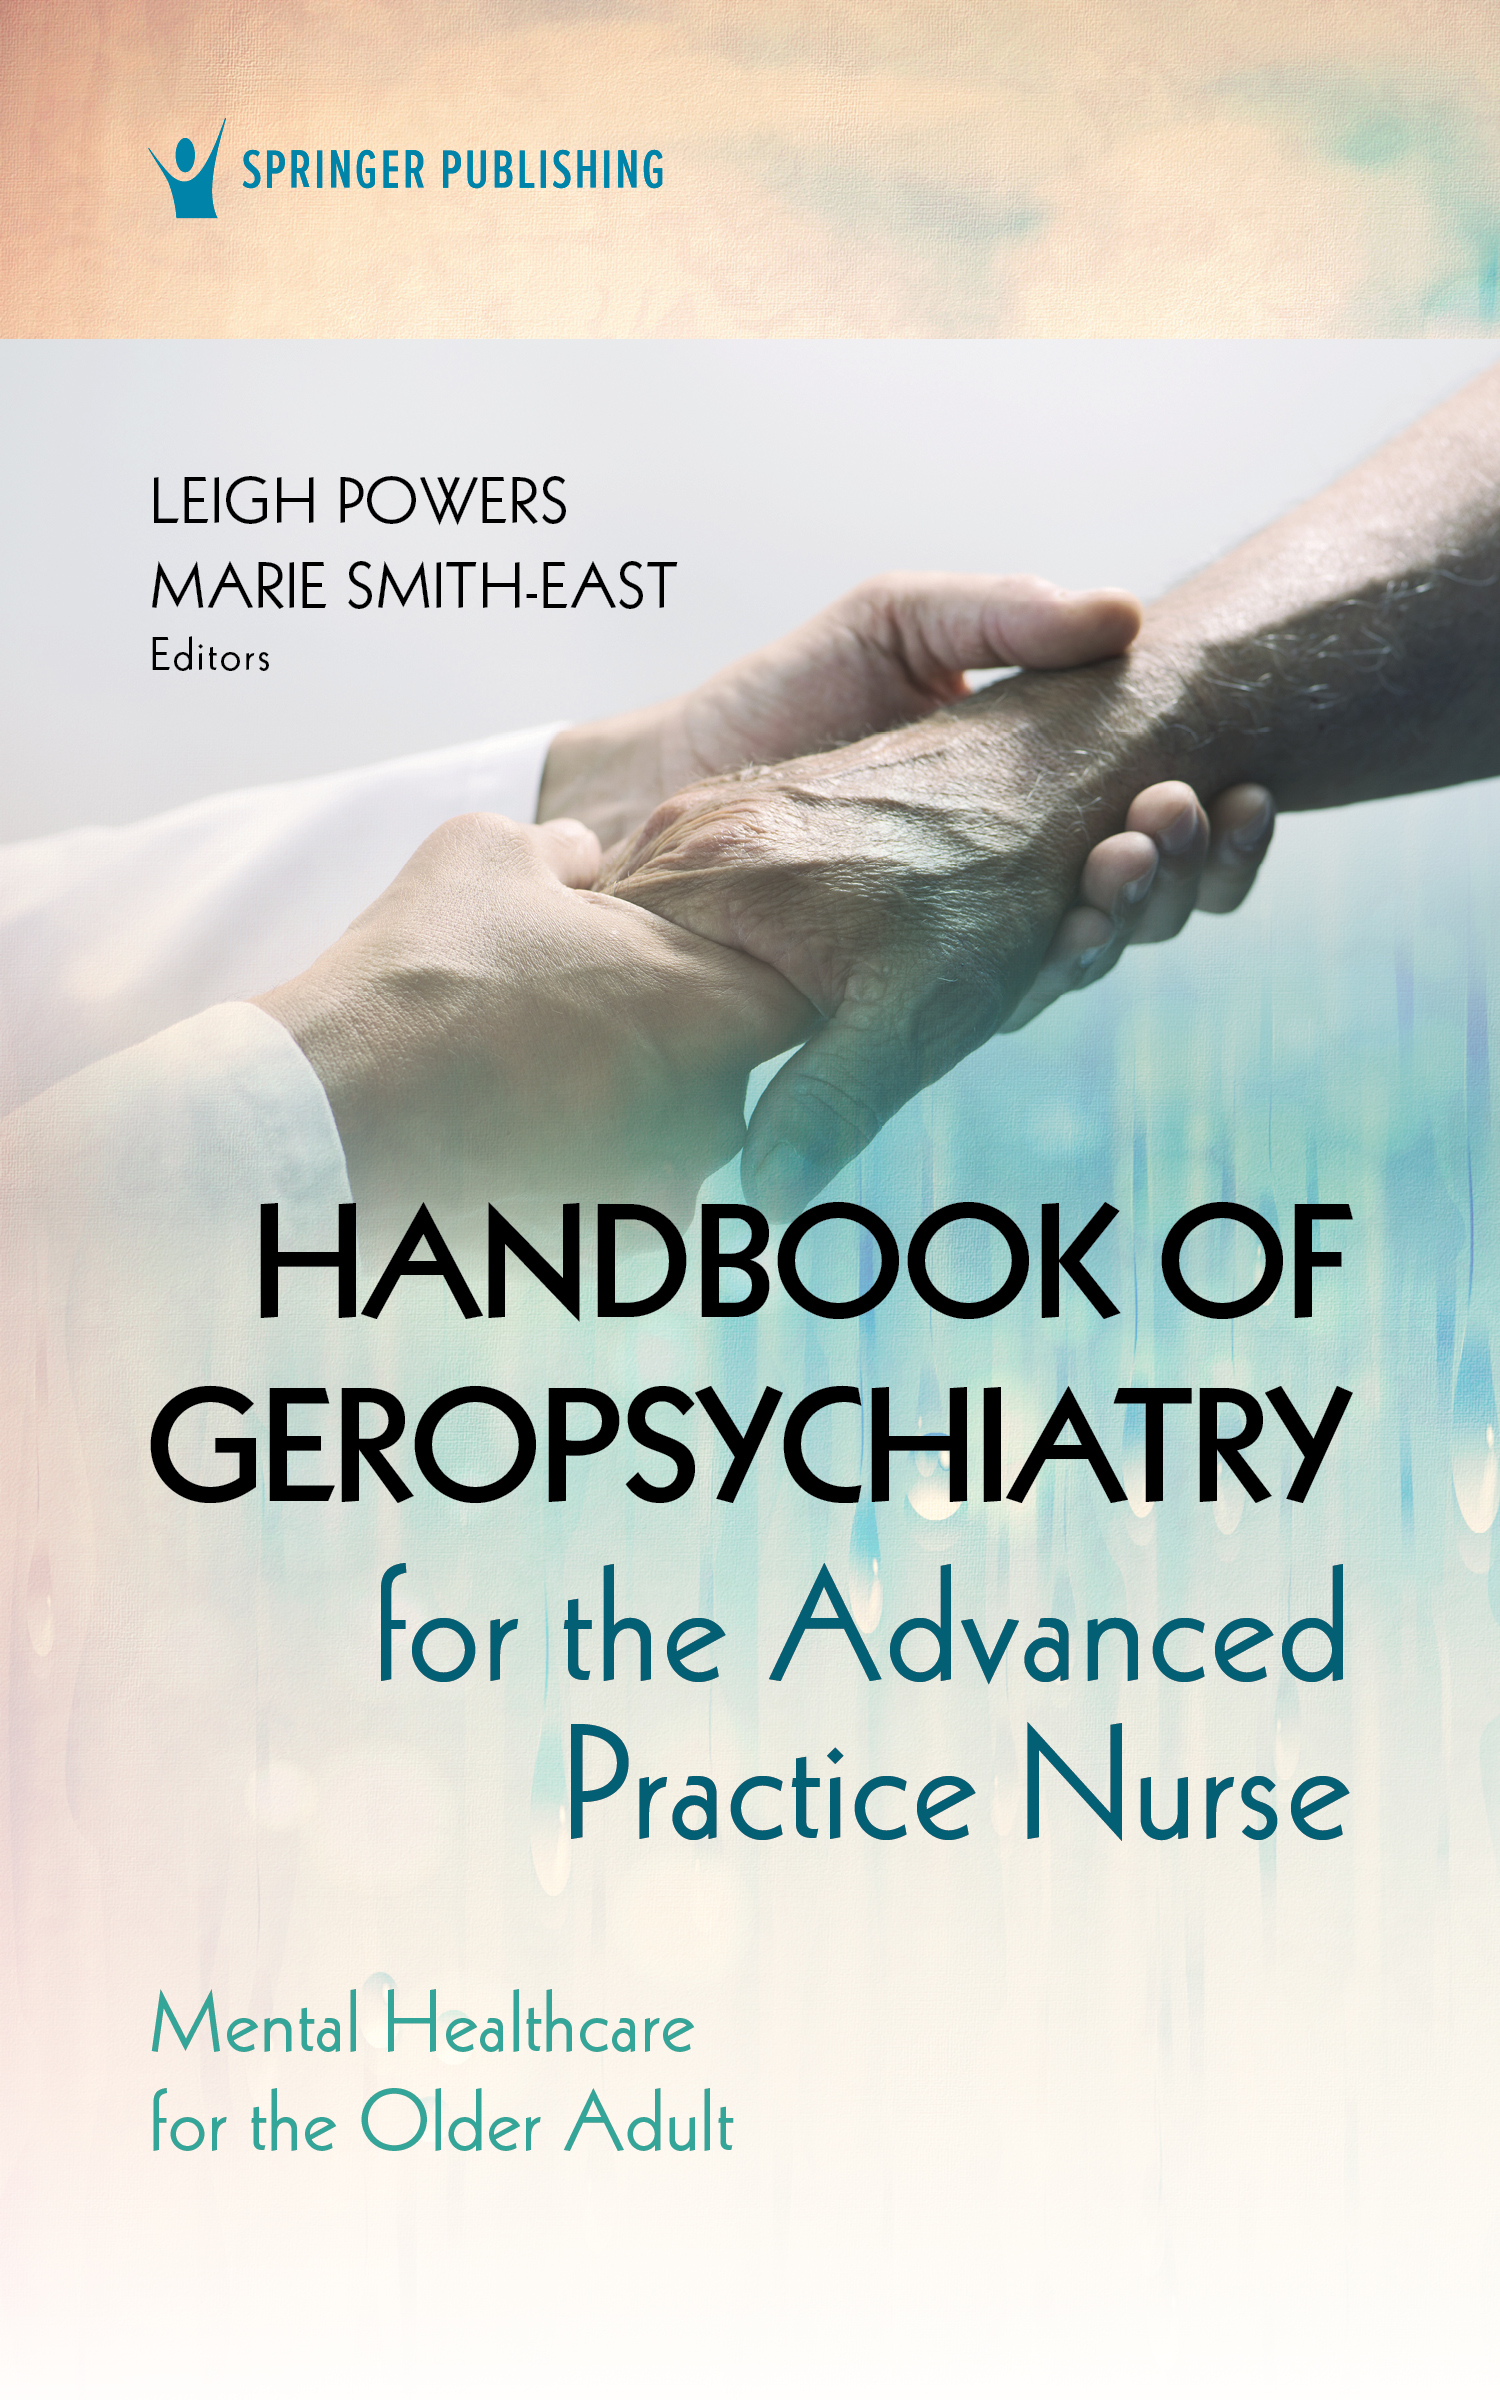 Handbook of Geropsychiatry for the Advanced Practice Nurse